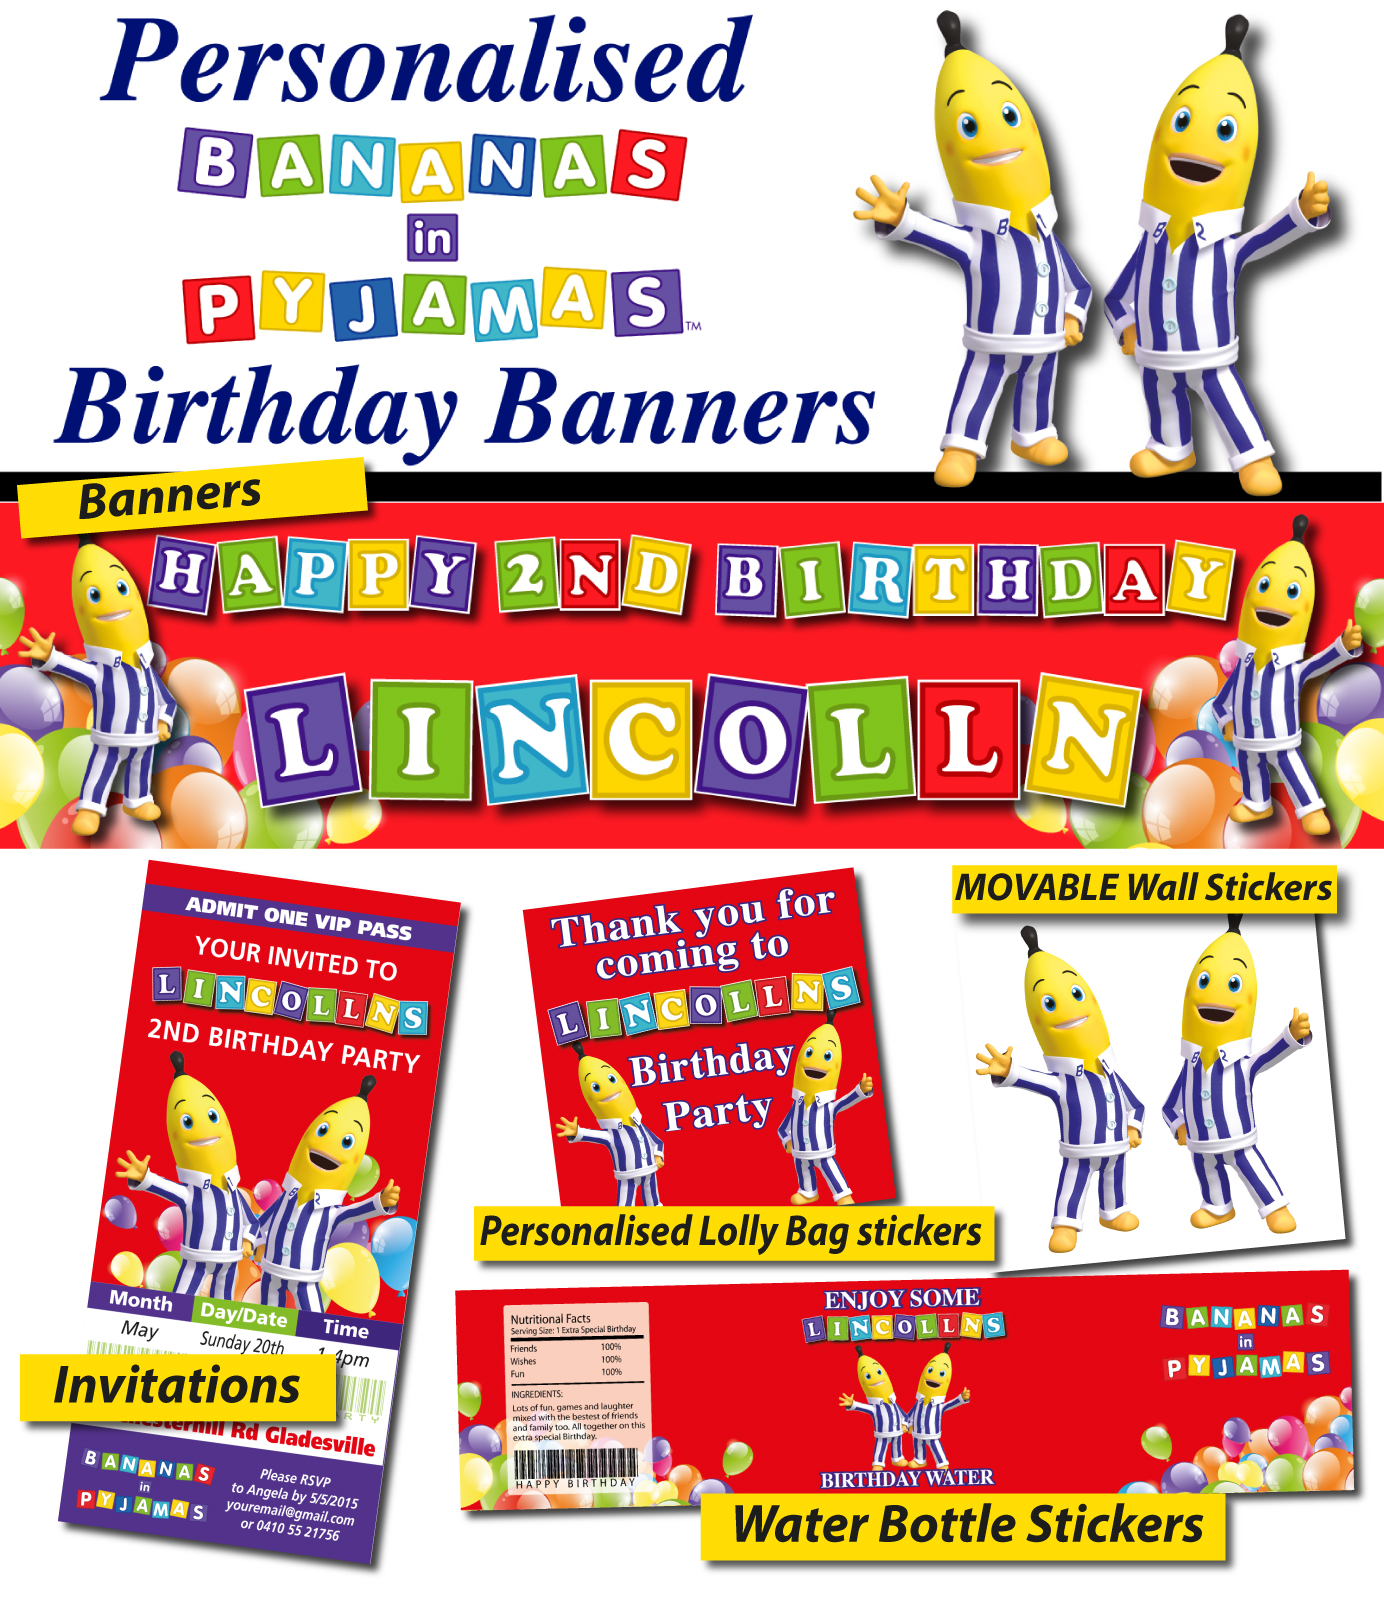 personalised octonauts birthday party banner decoration personalised bananas in pyjamas party banner decorations